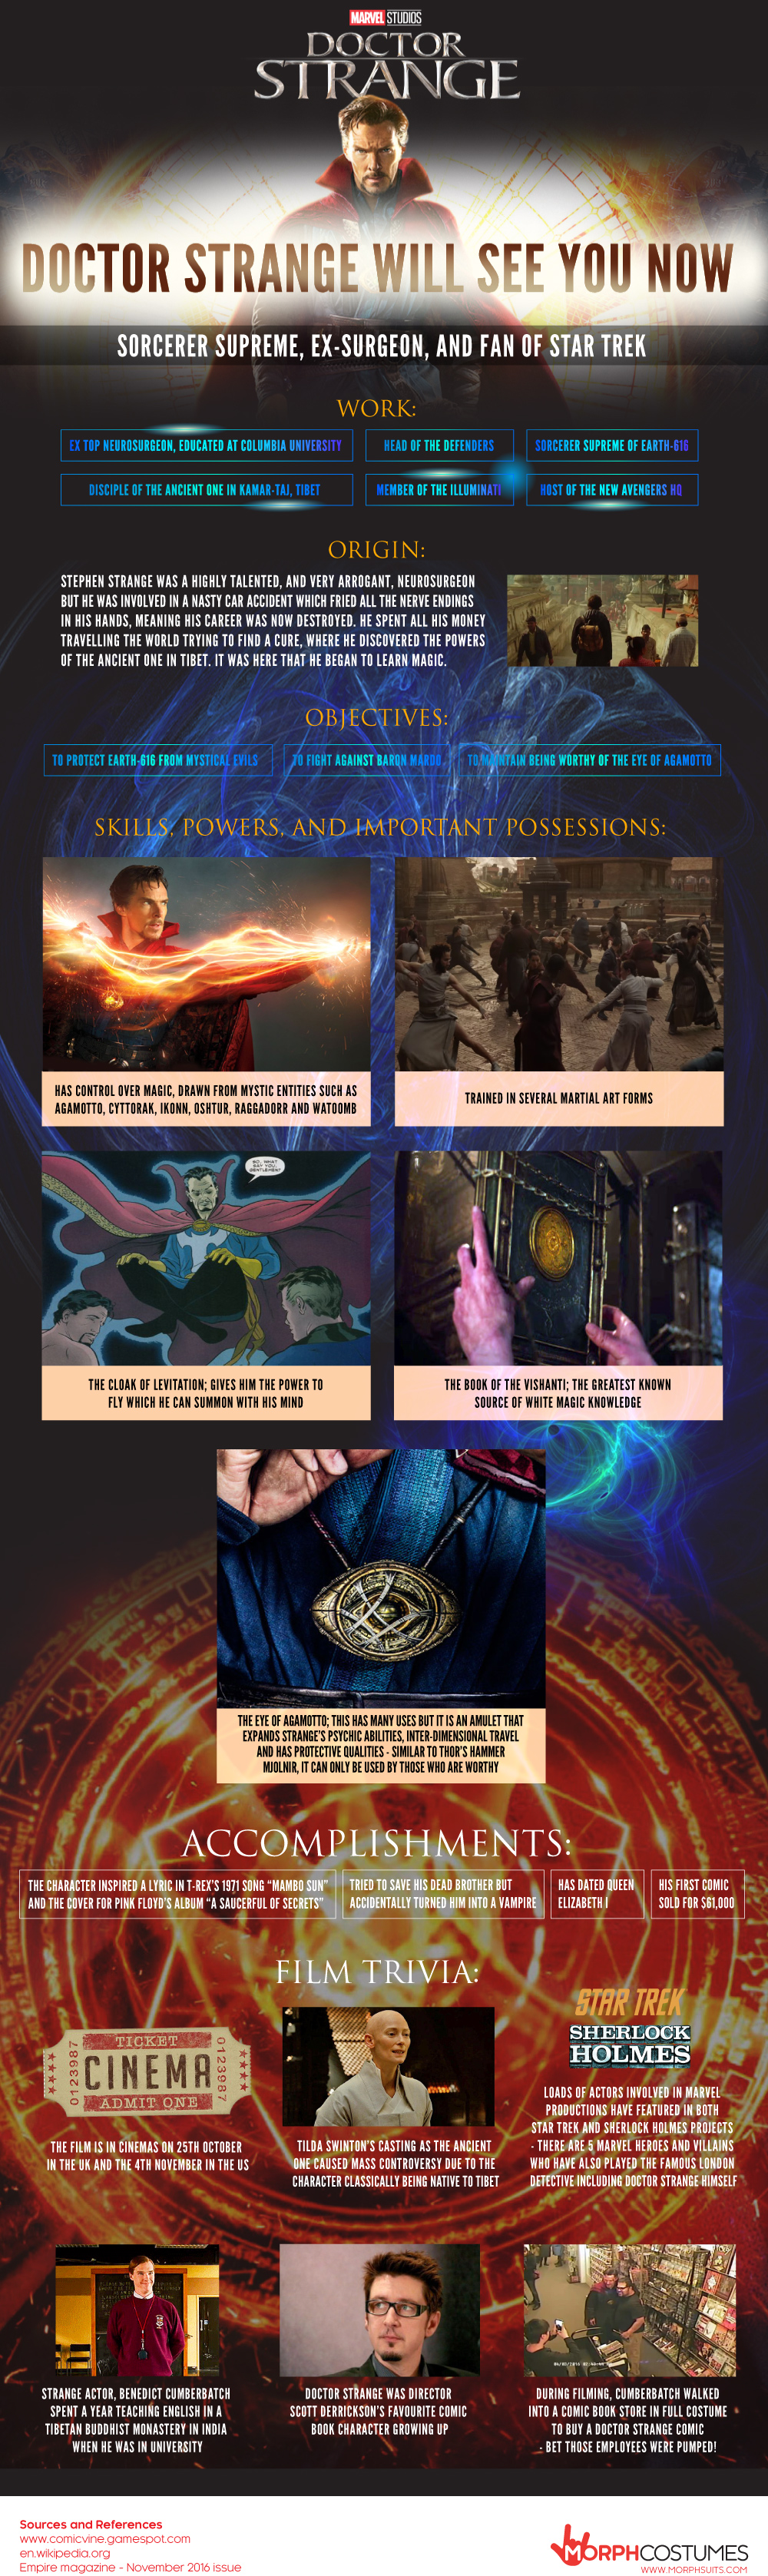 Dr Strange will see you now